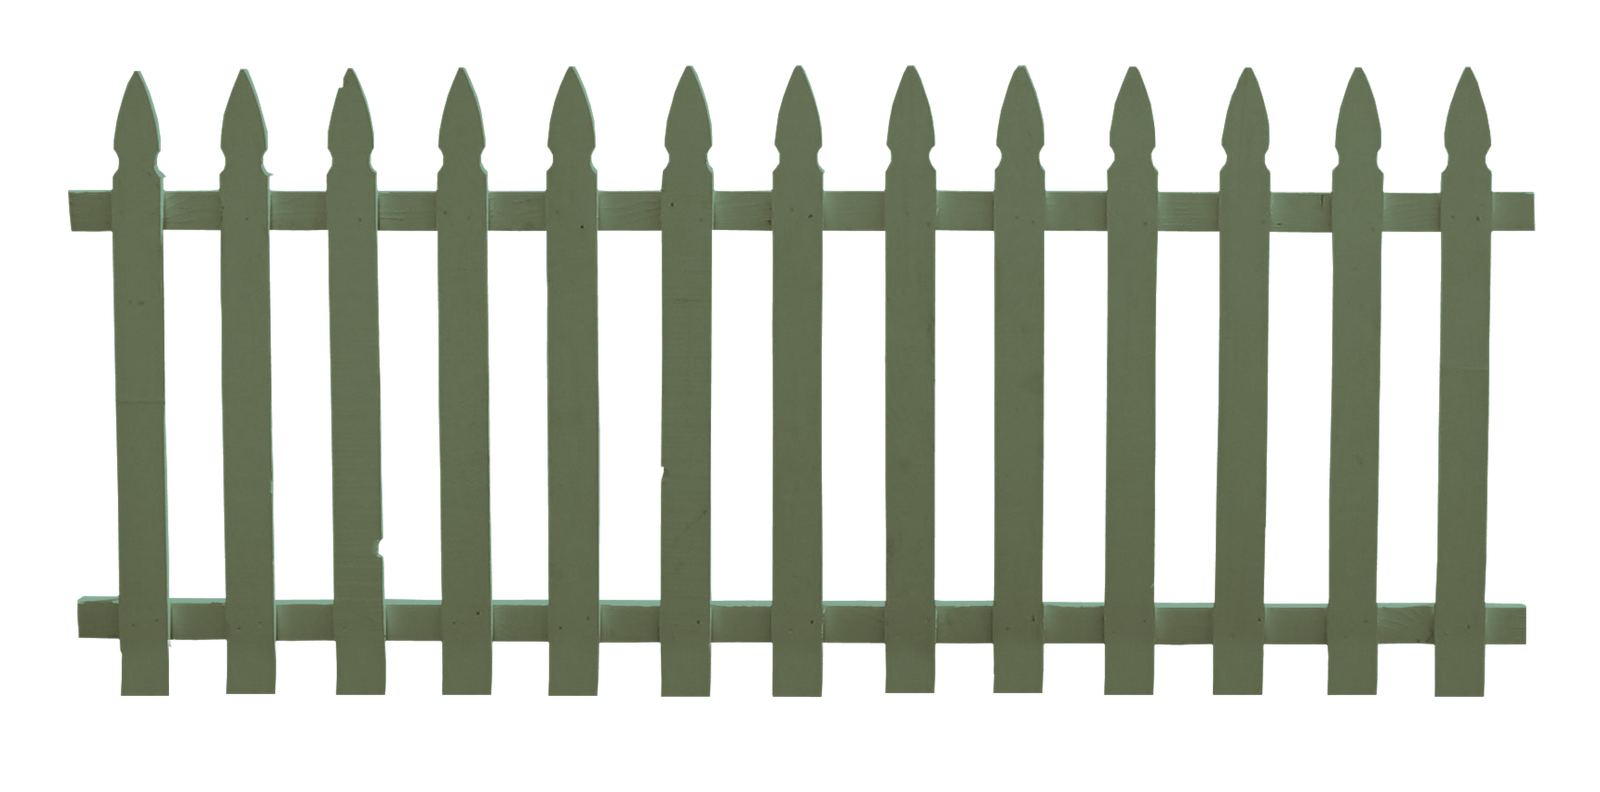 Fence clipart #11, Download drawings